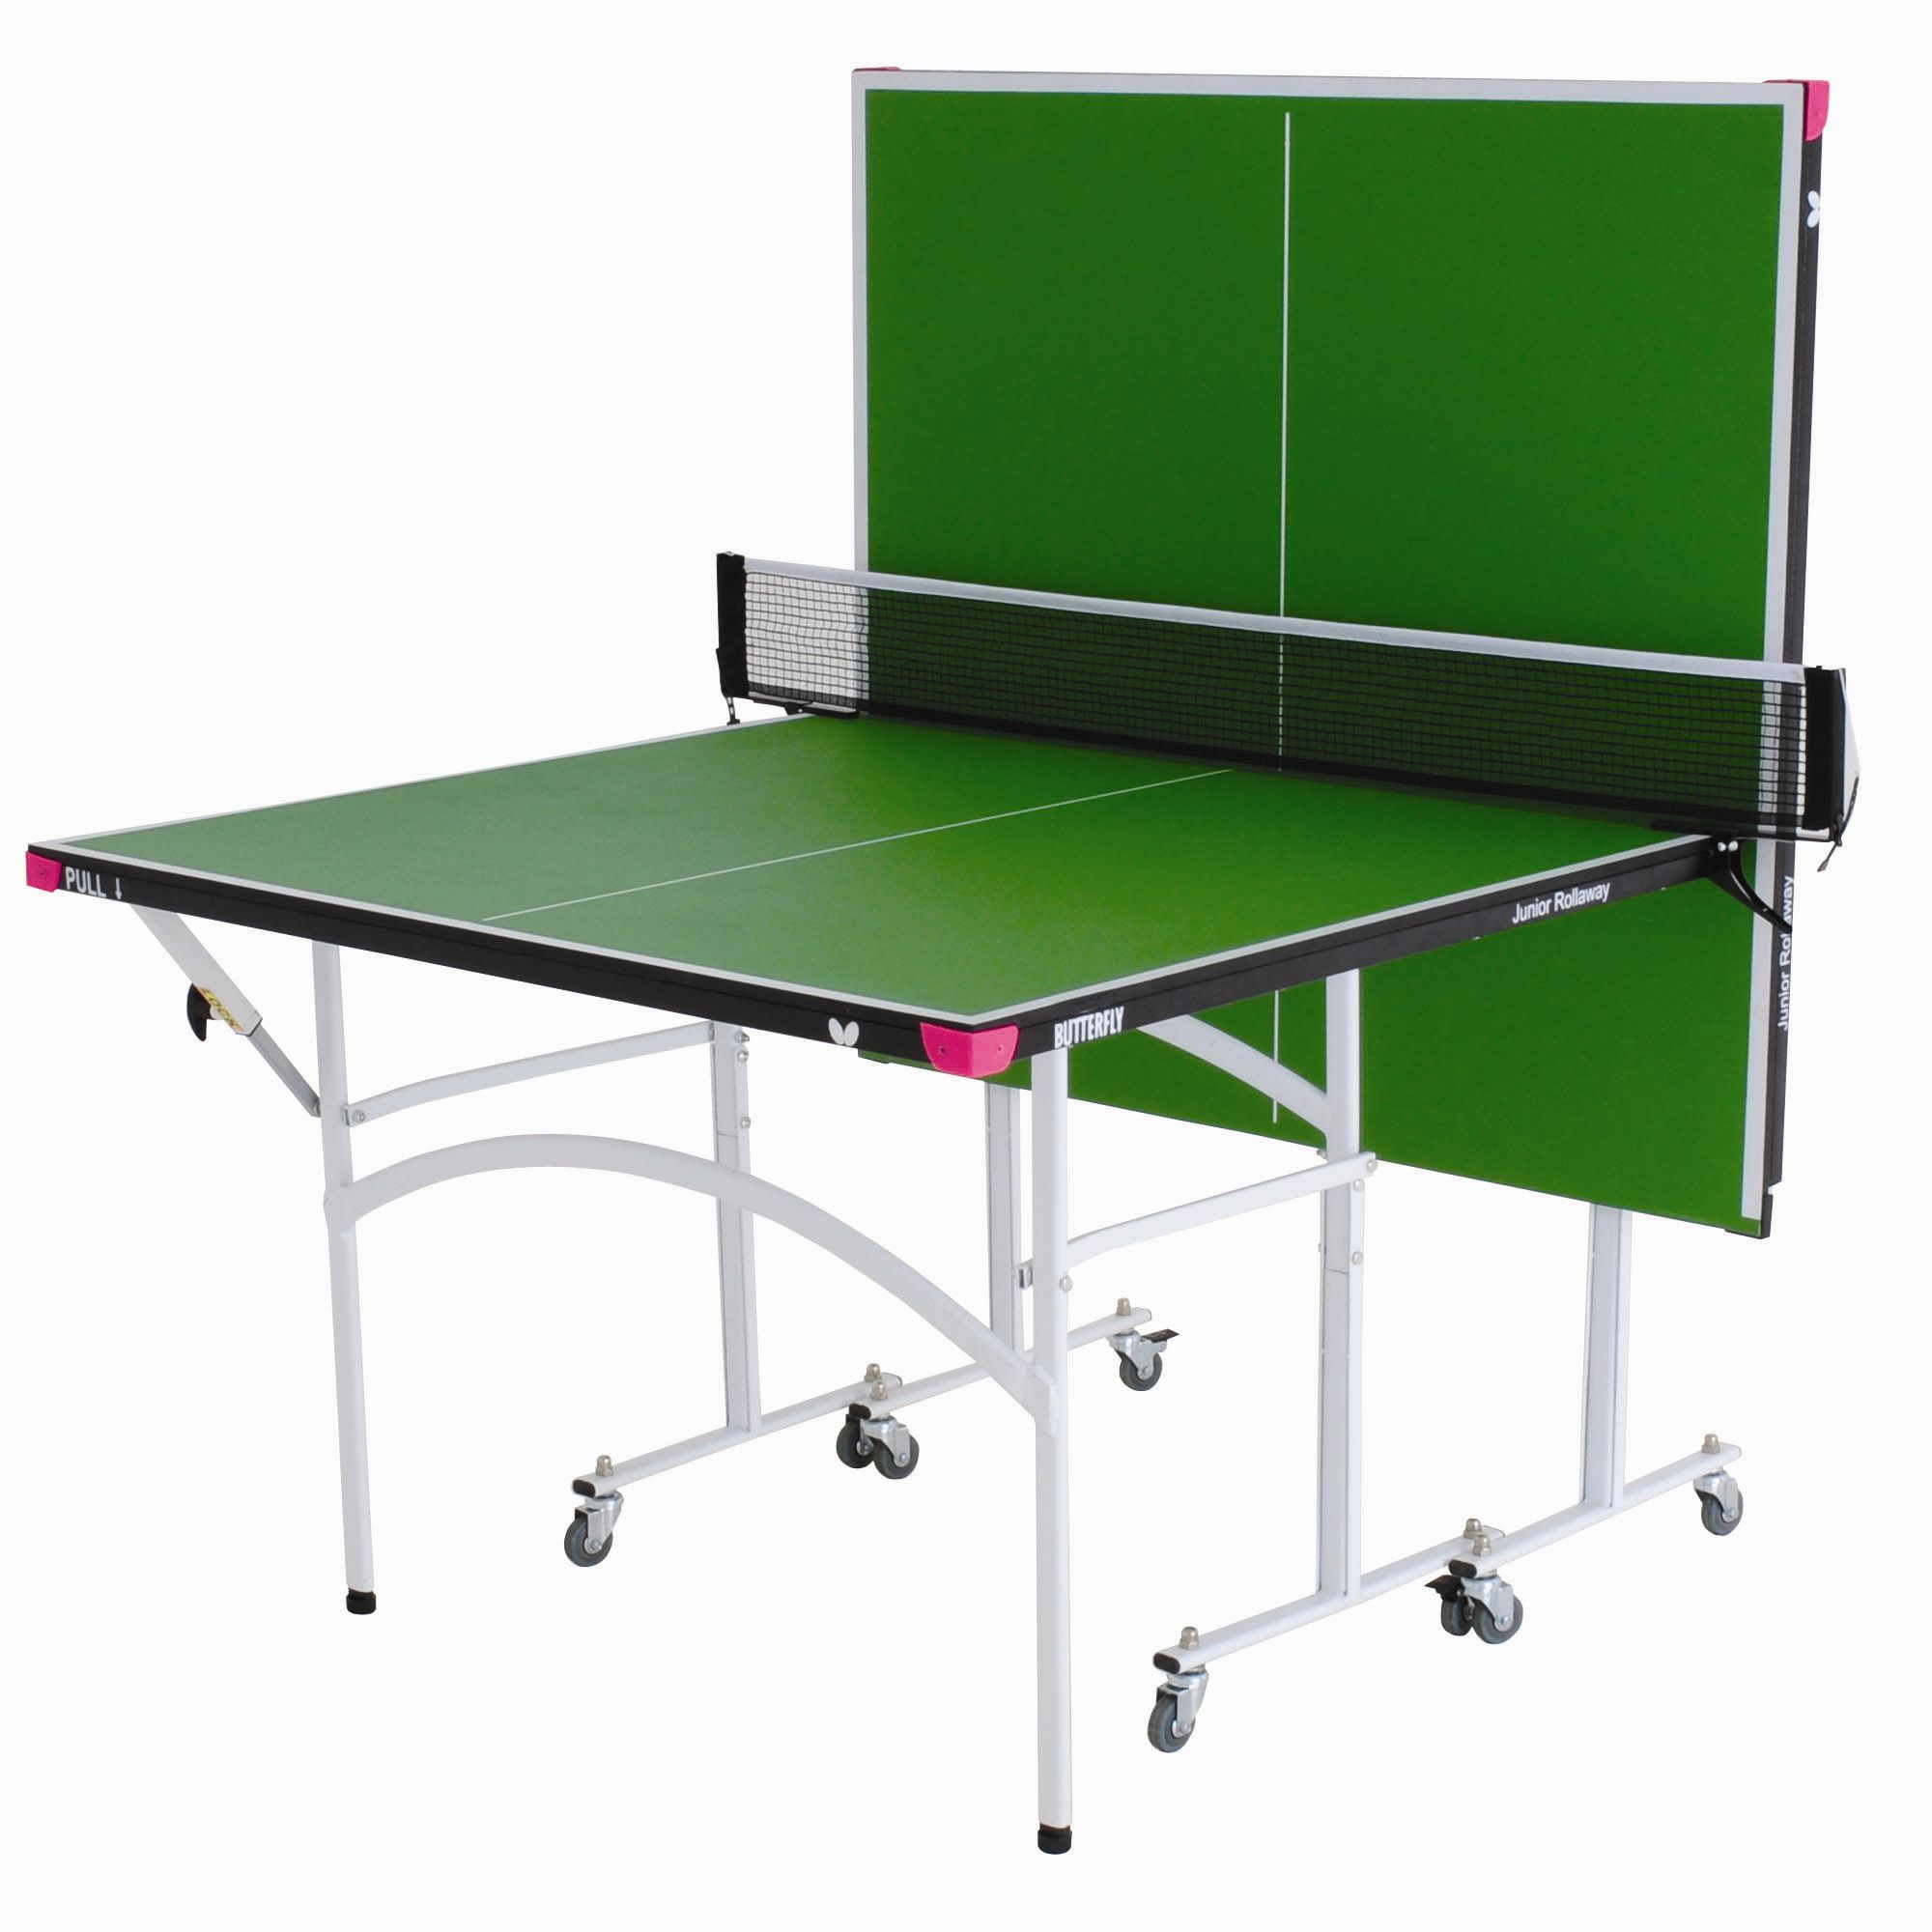 Butterfly junior rollaway table tennis table for Table tennis